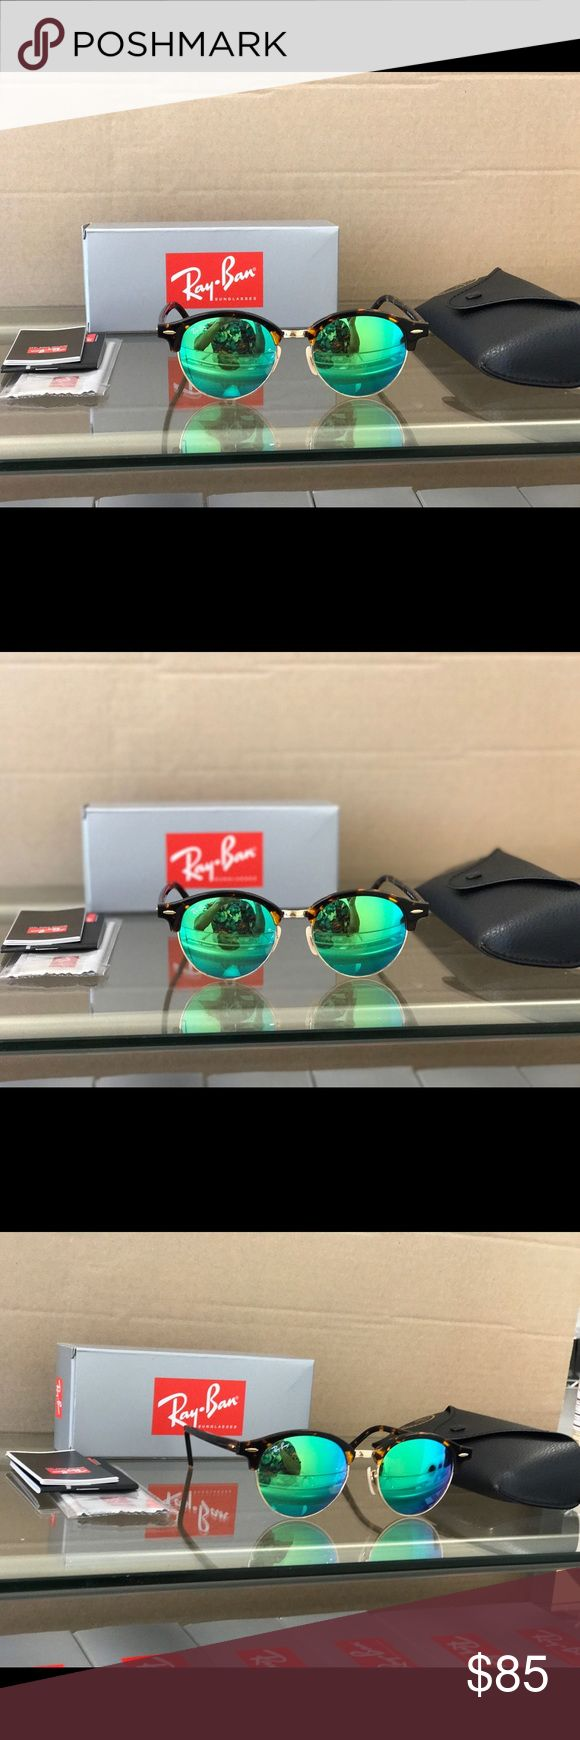 Authentic Ray-Ban Round Metal Sunglasses 51mm NWT Get yourself a beautiful pair of brand new Ray-Ban sunglasses for 65% off retail price! Please refer to the details below to get a better idea of what you are purchasing:  •These are 100% Brand New and Aut